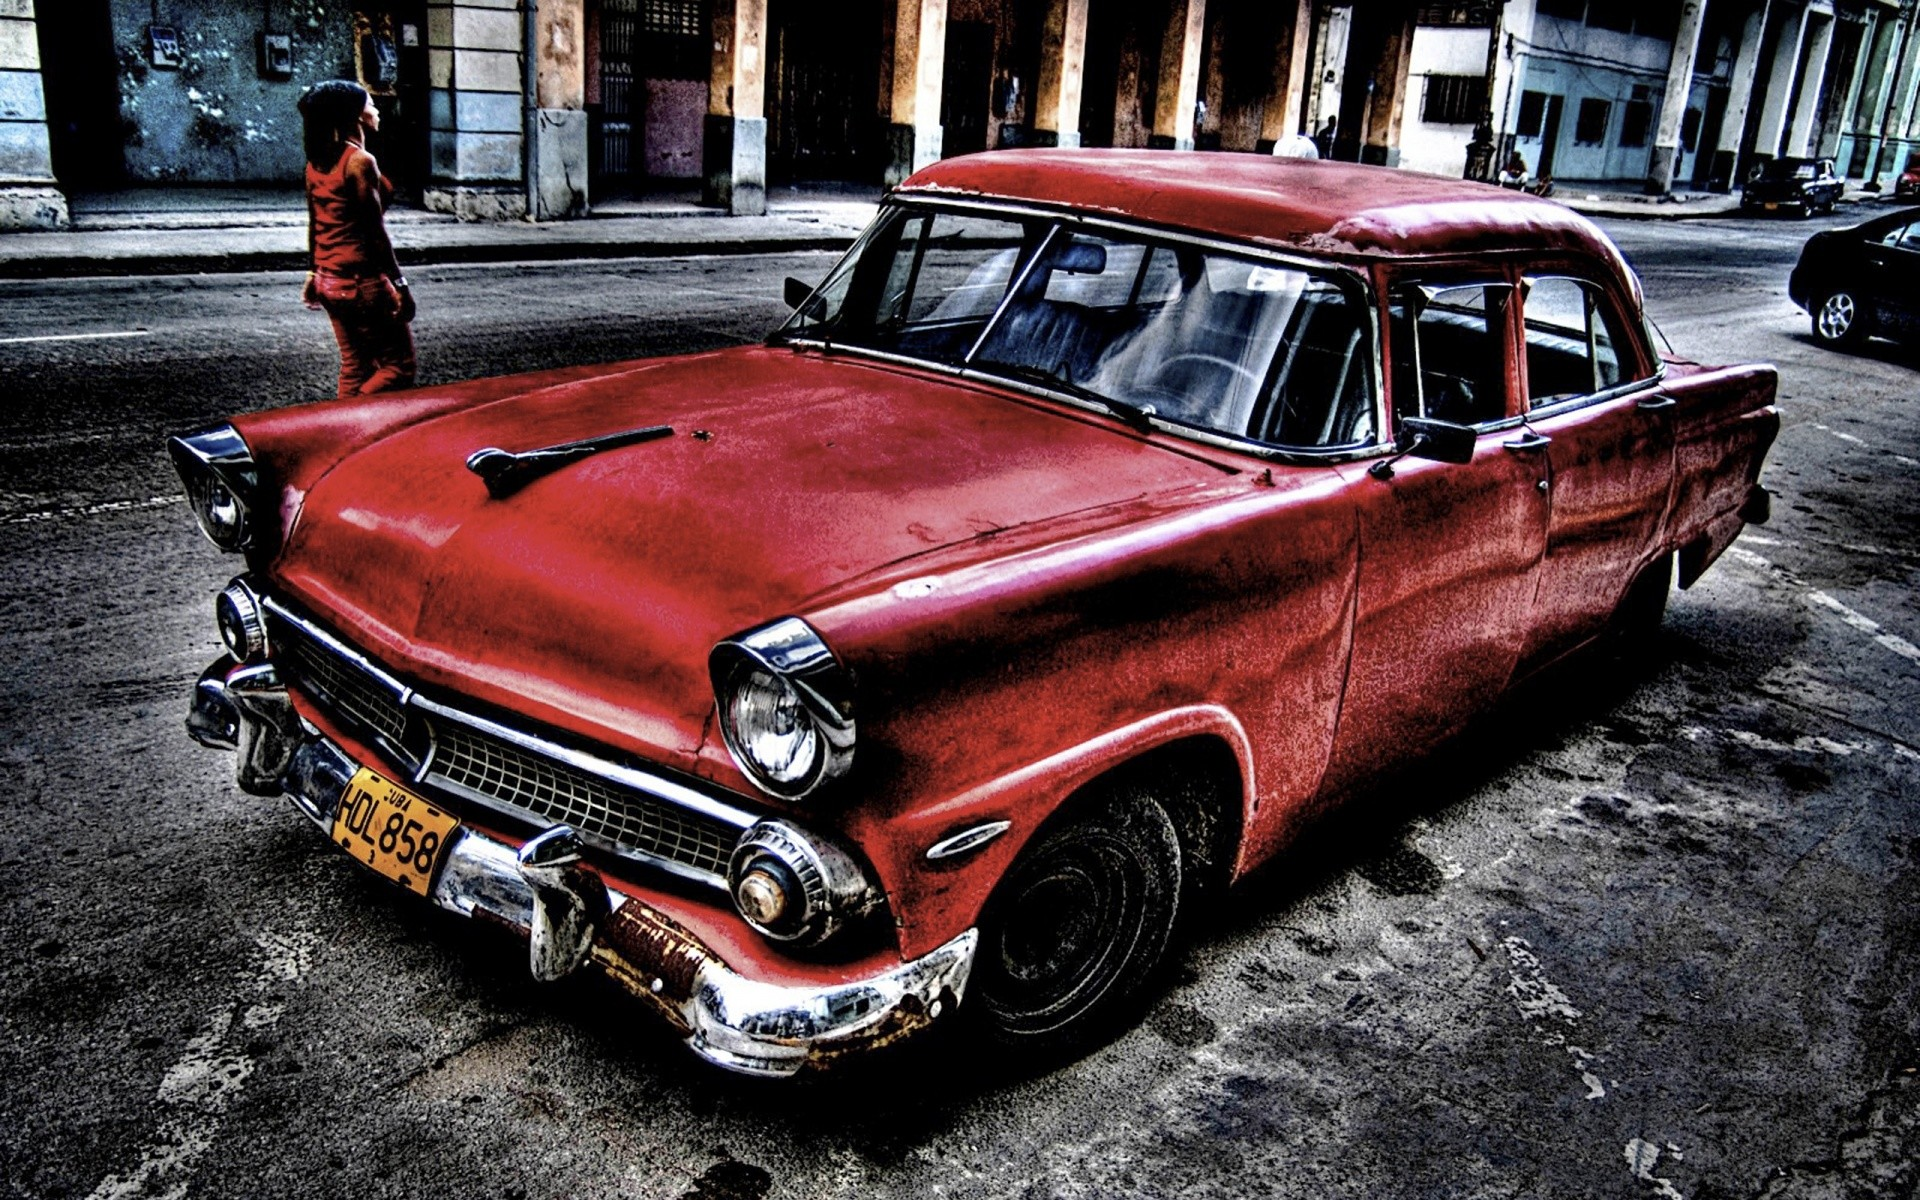 Wallpaper of Old Cars (71+ images)